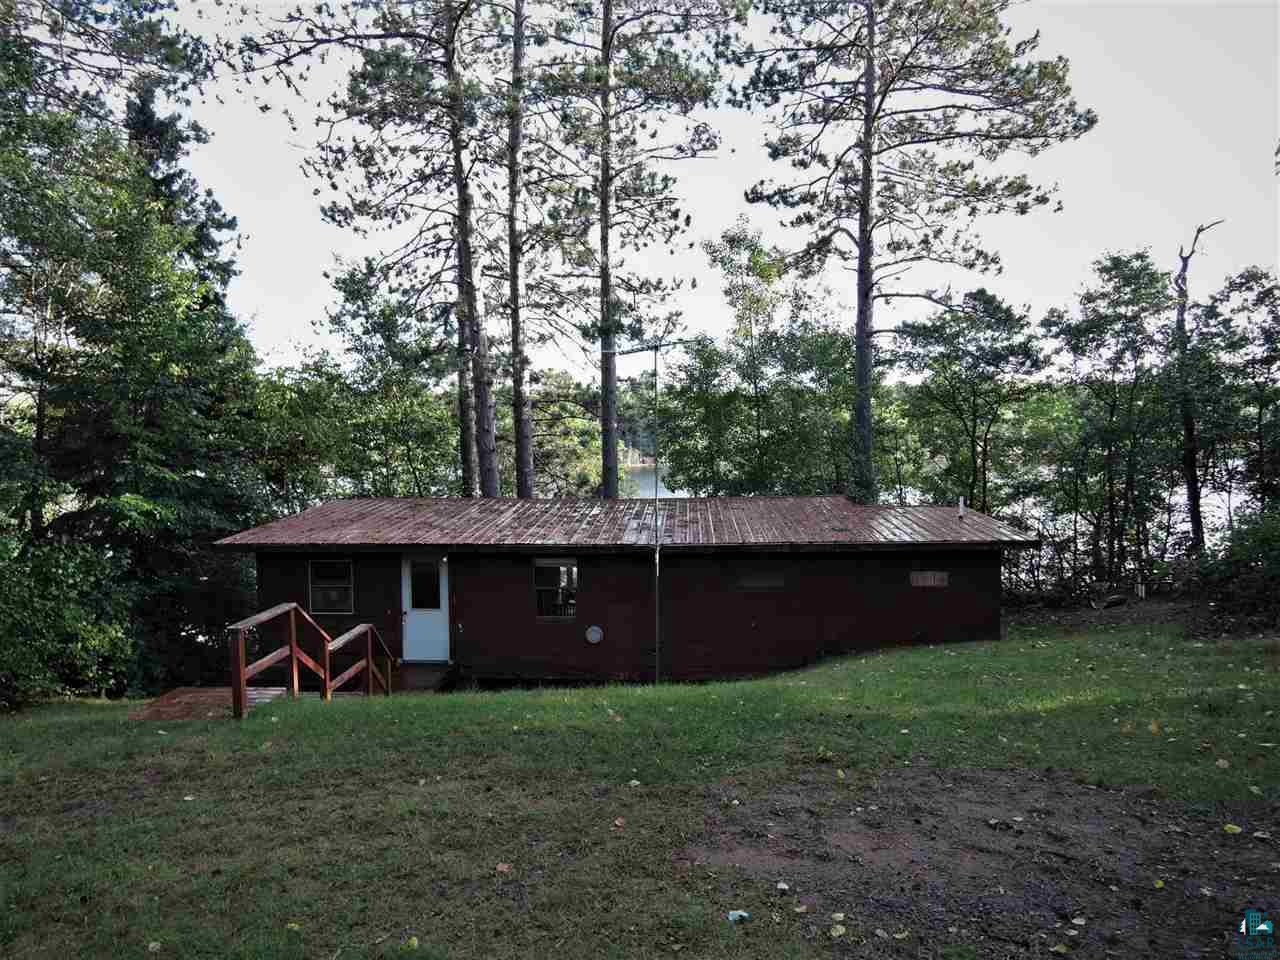 """There is deferred maintenance needed with this cabin, updated 220 amp service, new well pump,  and newer conventional septic system. Newer garage/workshop with 200 amp service. Seller will contribute $5,000 towards Buyer's closing costs or money towards any upgrades or repairs needed at closing with a successful sale. Make this your Northwoods hunting/fishing cabin now and a future home site located on 1.5 acres with 100' of sandy beach frontage with incredible southerly views on Pickerel Lake, also includes a newer 20' galvanized aluminum dock. Great location in Barnes with many other lakes and recreation trails and activities within minutes, an hour from Superior/Duluth, half-hour to Hayward, and Iron River. Fish for Northern, Walleye, Bass, and panfish, boating, canoeing, kayaking, paddleboat, and swimming in crystal clear water,  with sandy bottom and beach area. The rustic two-bedroom, one-bath cabin was remodeled in 1989 with a new deck and patio sliding door, metal roof, gas furnace unit in the kitchen, and 220-amp service. Newer garage in built-in 2003, with cement floor, 220-amp service, and garage door opener. The open area near the garage is a great location for a future home/cabin site Fire pit near sandy beach frontage and a picnic area with a picnic table included on level ground near the cabin.  Seller is motivated selling """"As Is""""  what you see is what you get in cabin and garage, including 16' fiberglass fishing boat with an Evinrude 70 HP motor, 12' V John boat, paddle boat, are included without warranty with a full asking price offer!"""